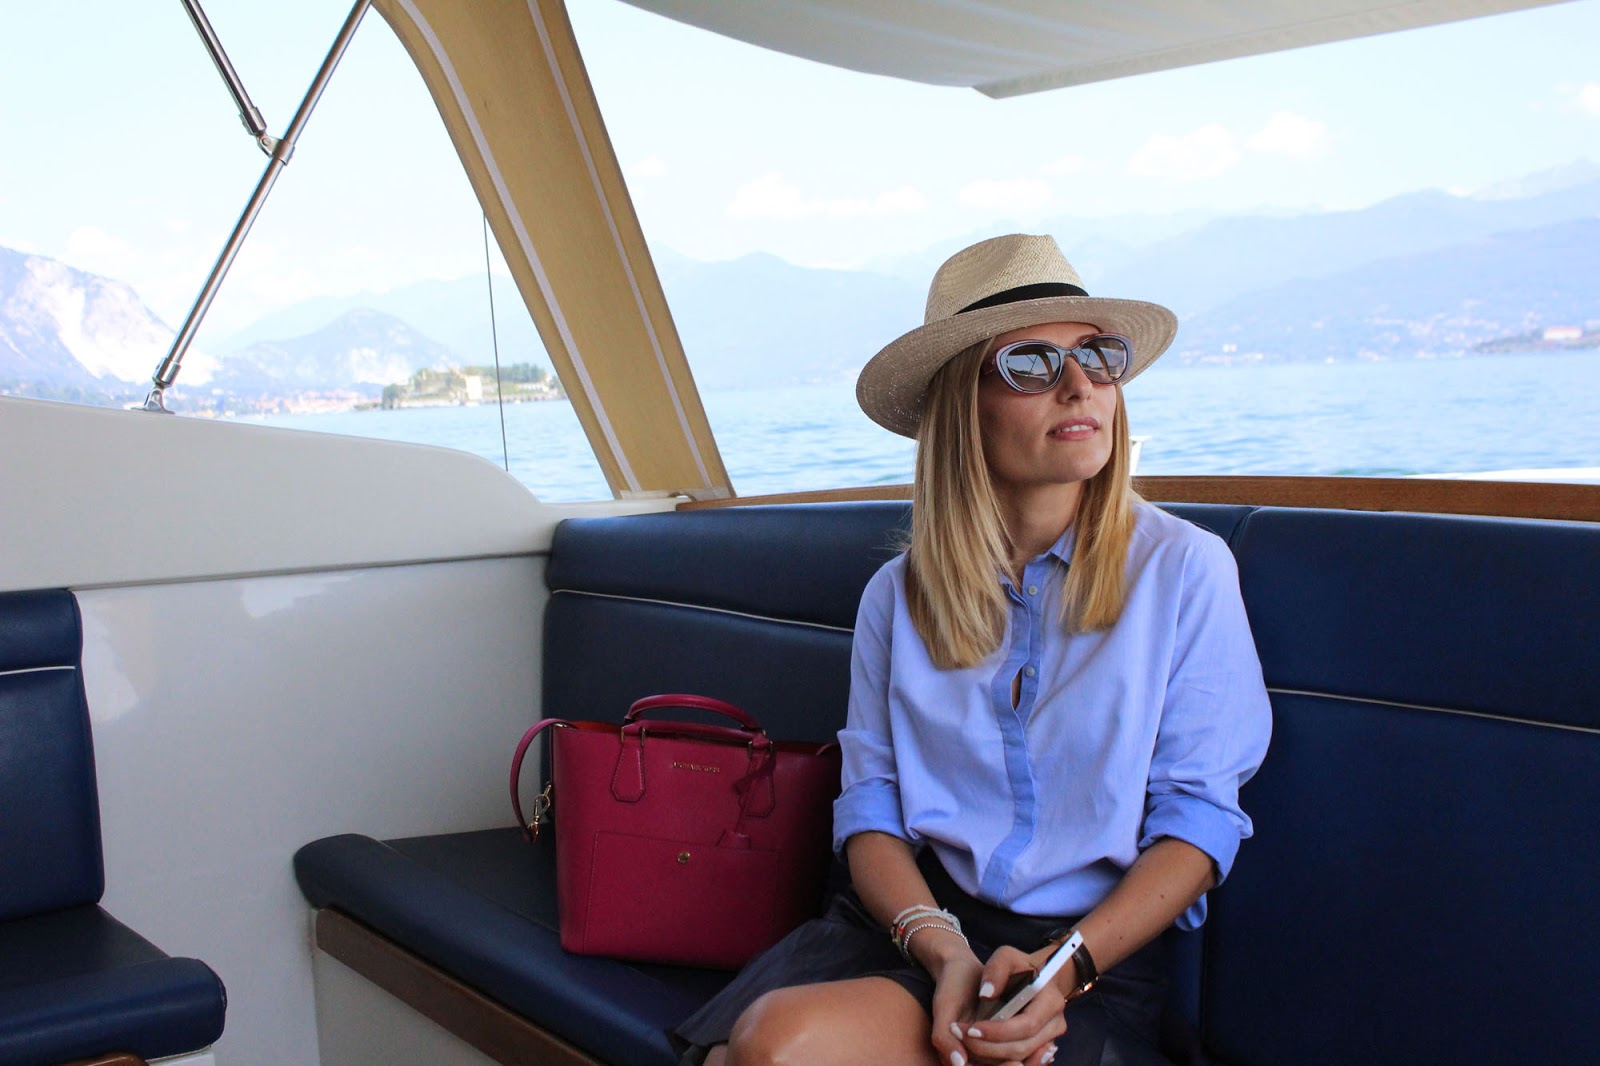 Eniwhere Fashion - Blue shirt - Isola Bella